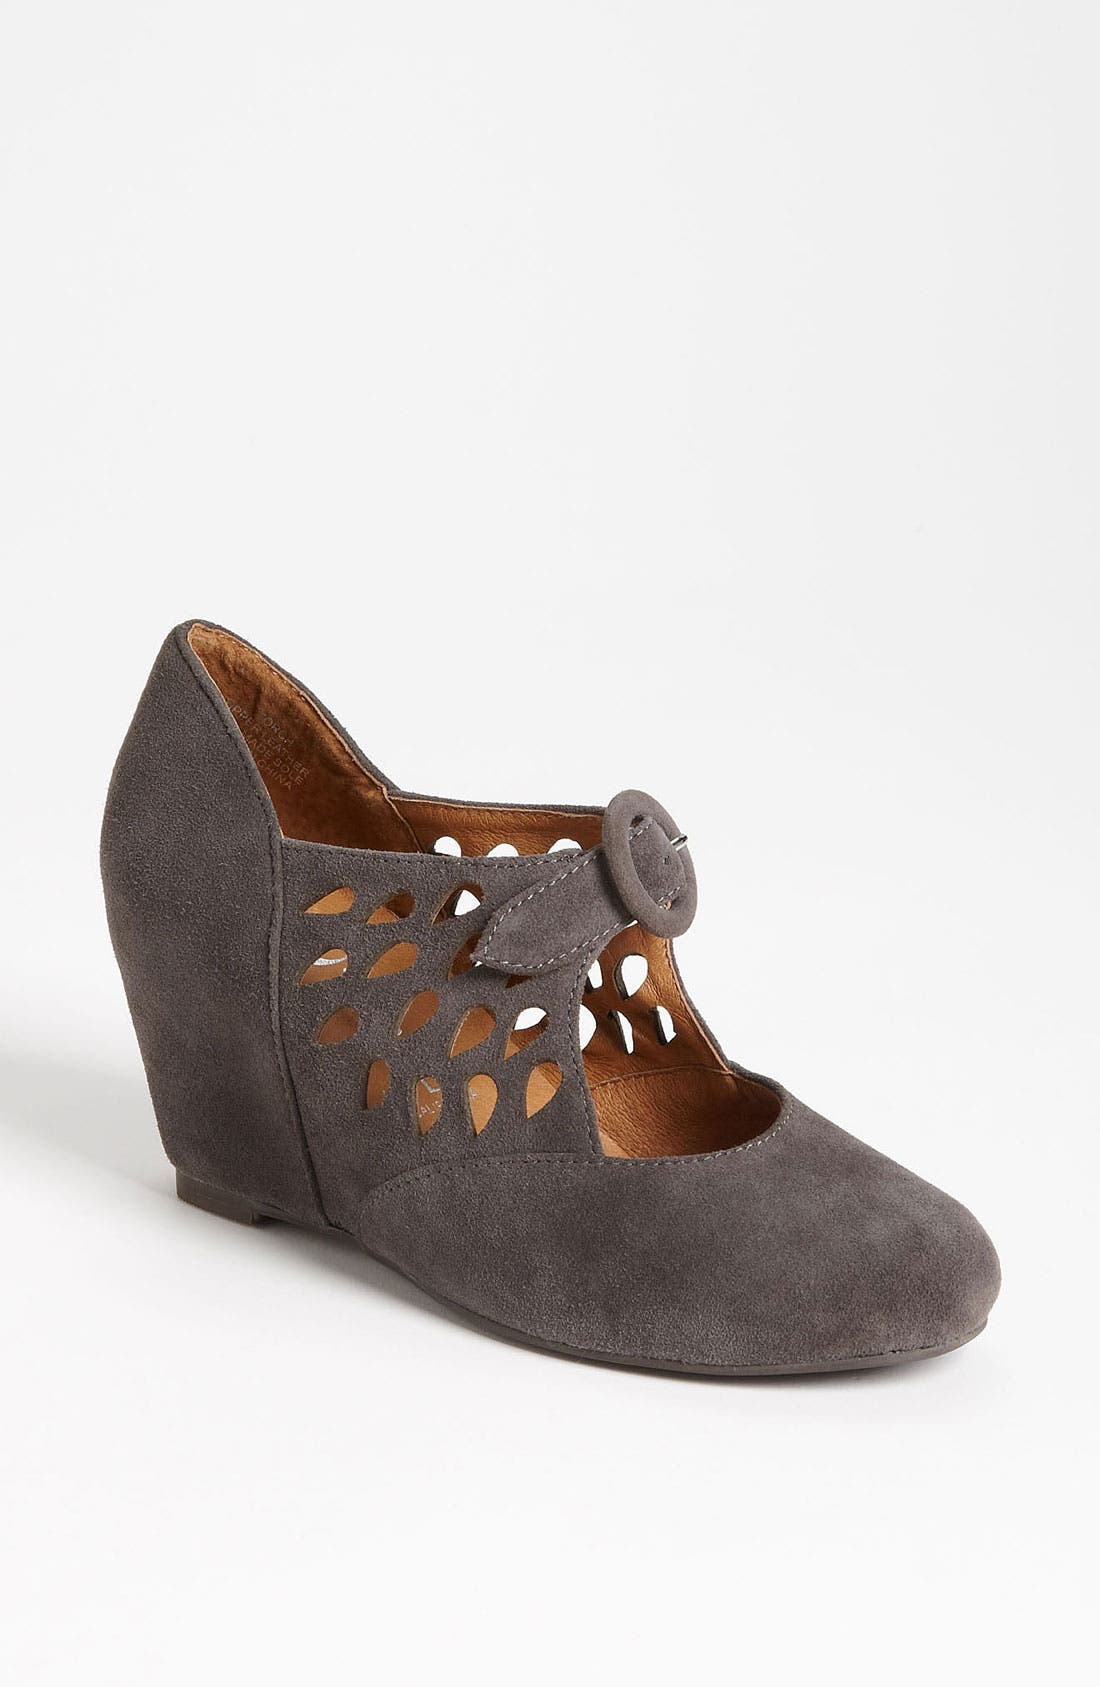 Main Image - Jeffrey Campbell 'Torch' Mary Jane Wedge